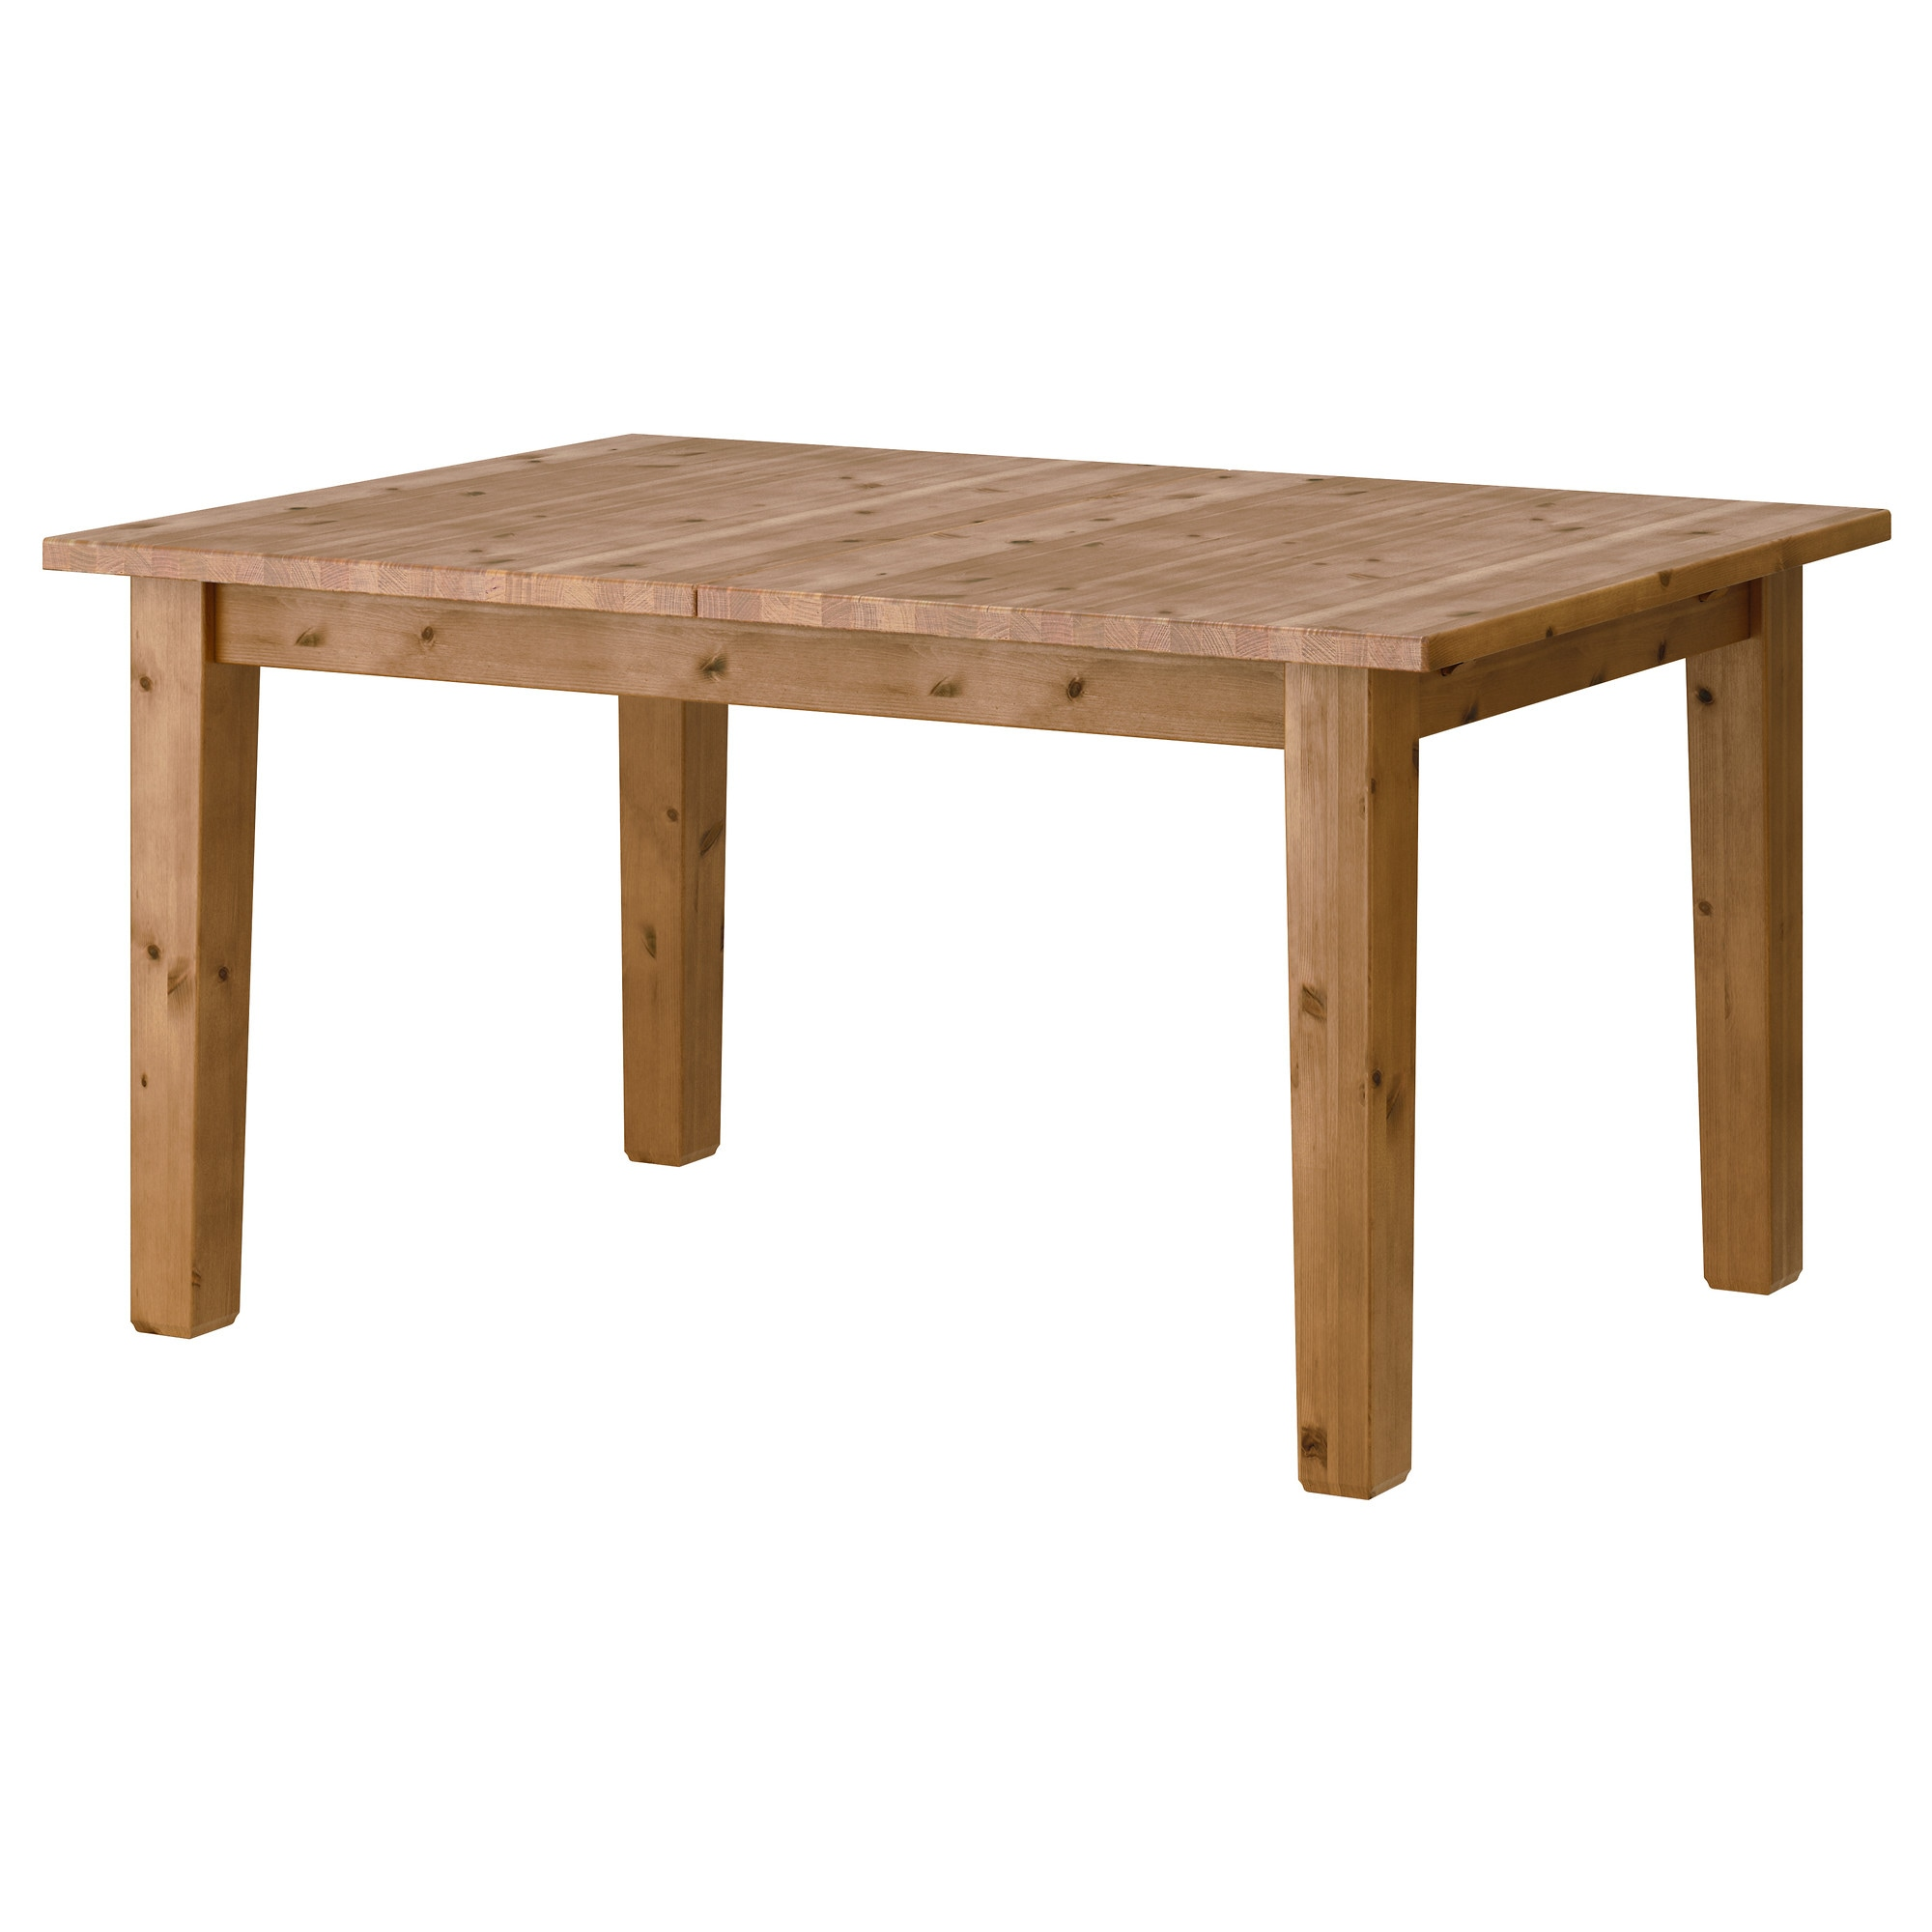 "STORN""S Extendable table IKEA"